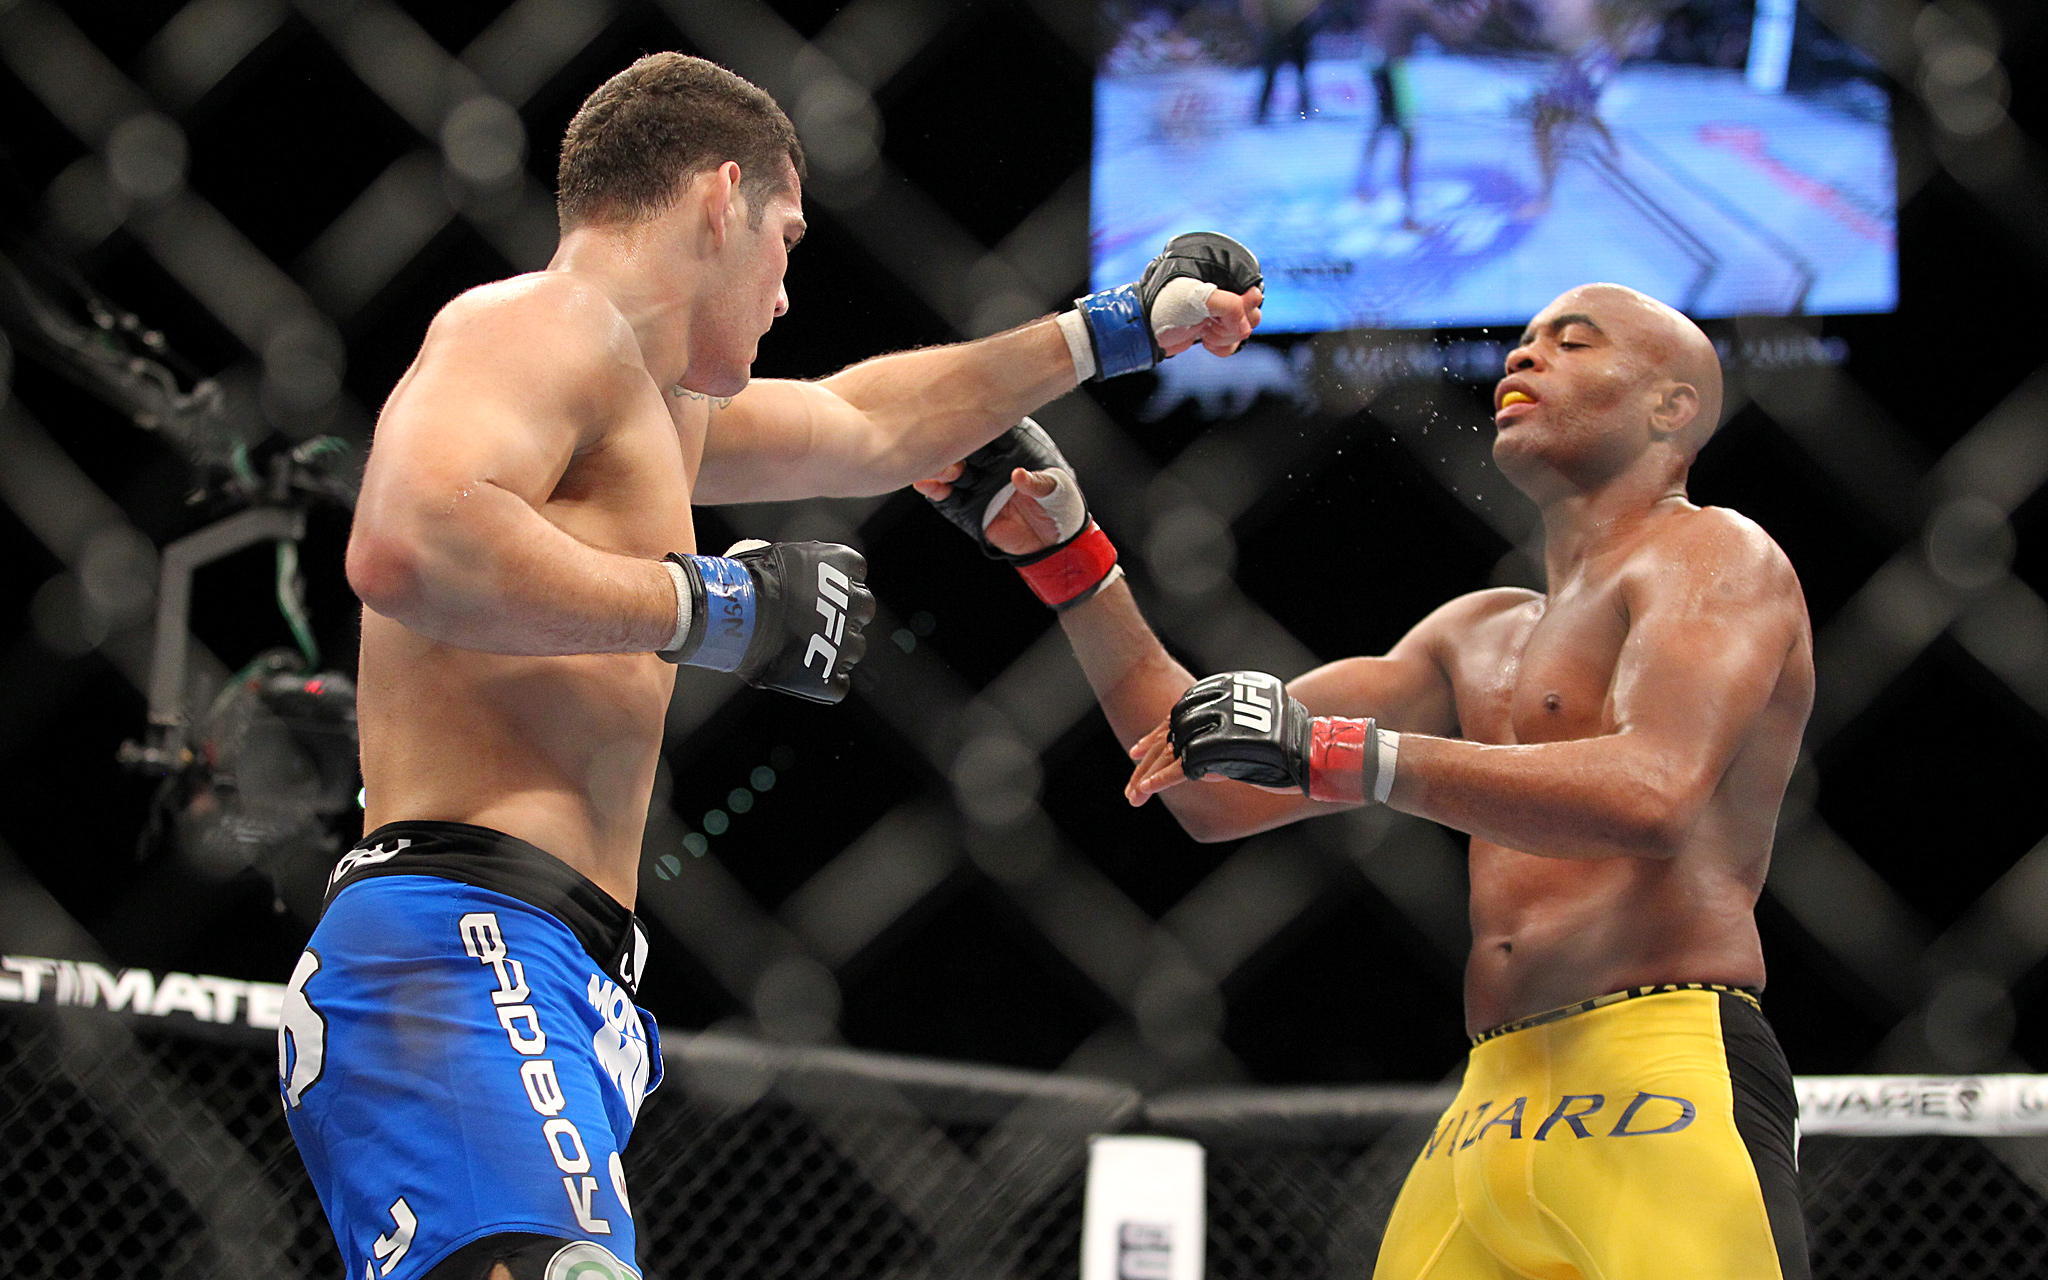 Chris Weidman knocks out Anderson Silva